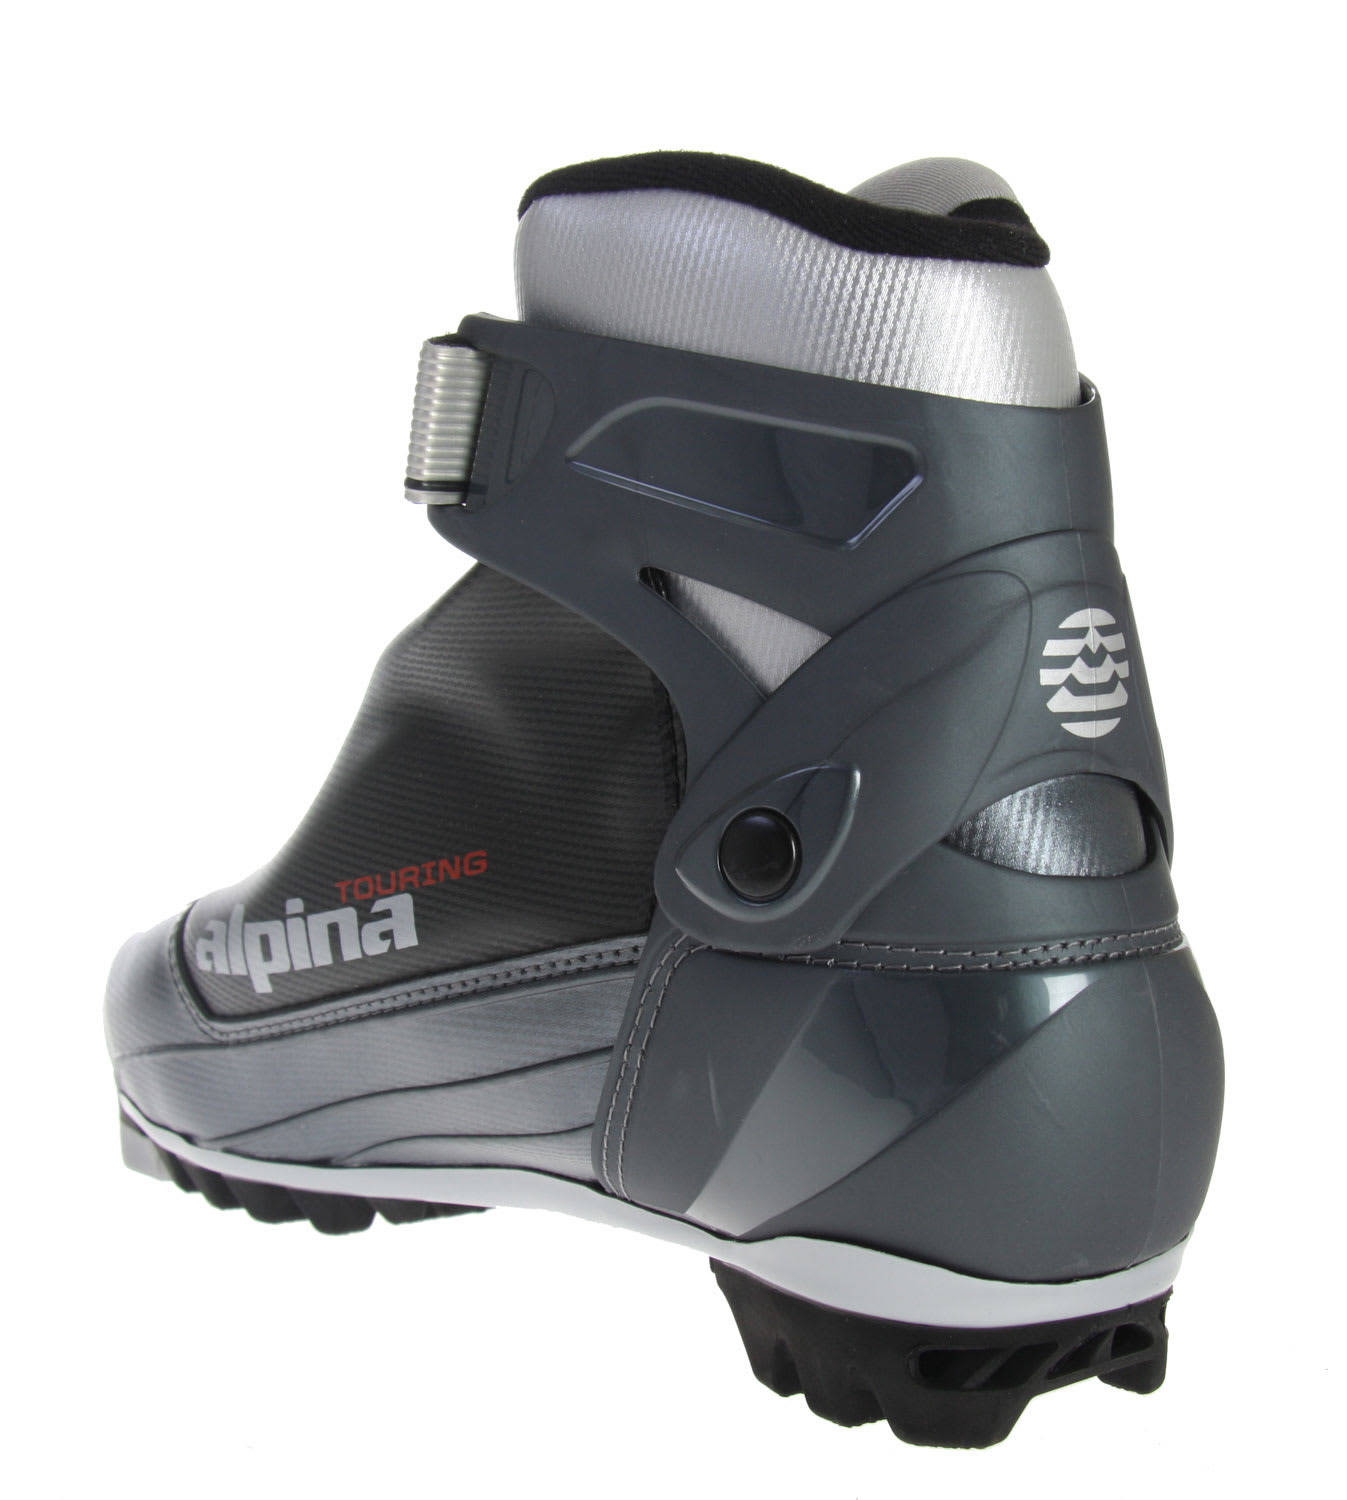 Alpina T Crosscountry Ski Boots - Alpina cross country ski